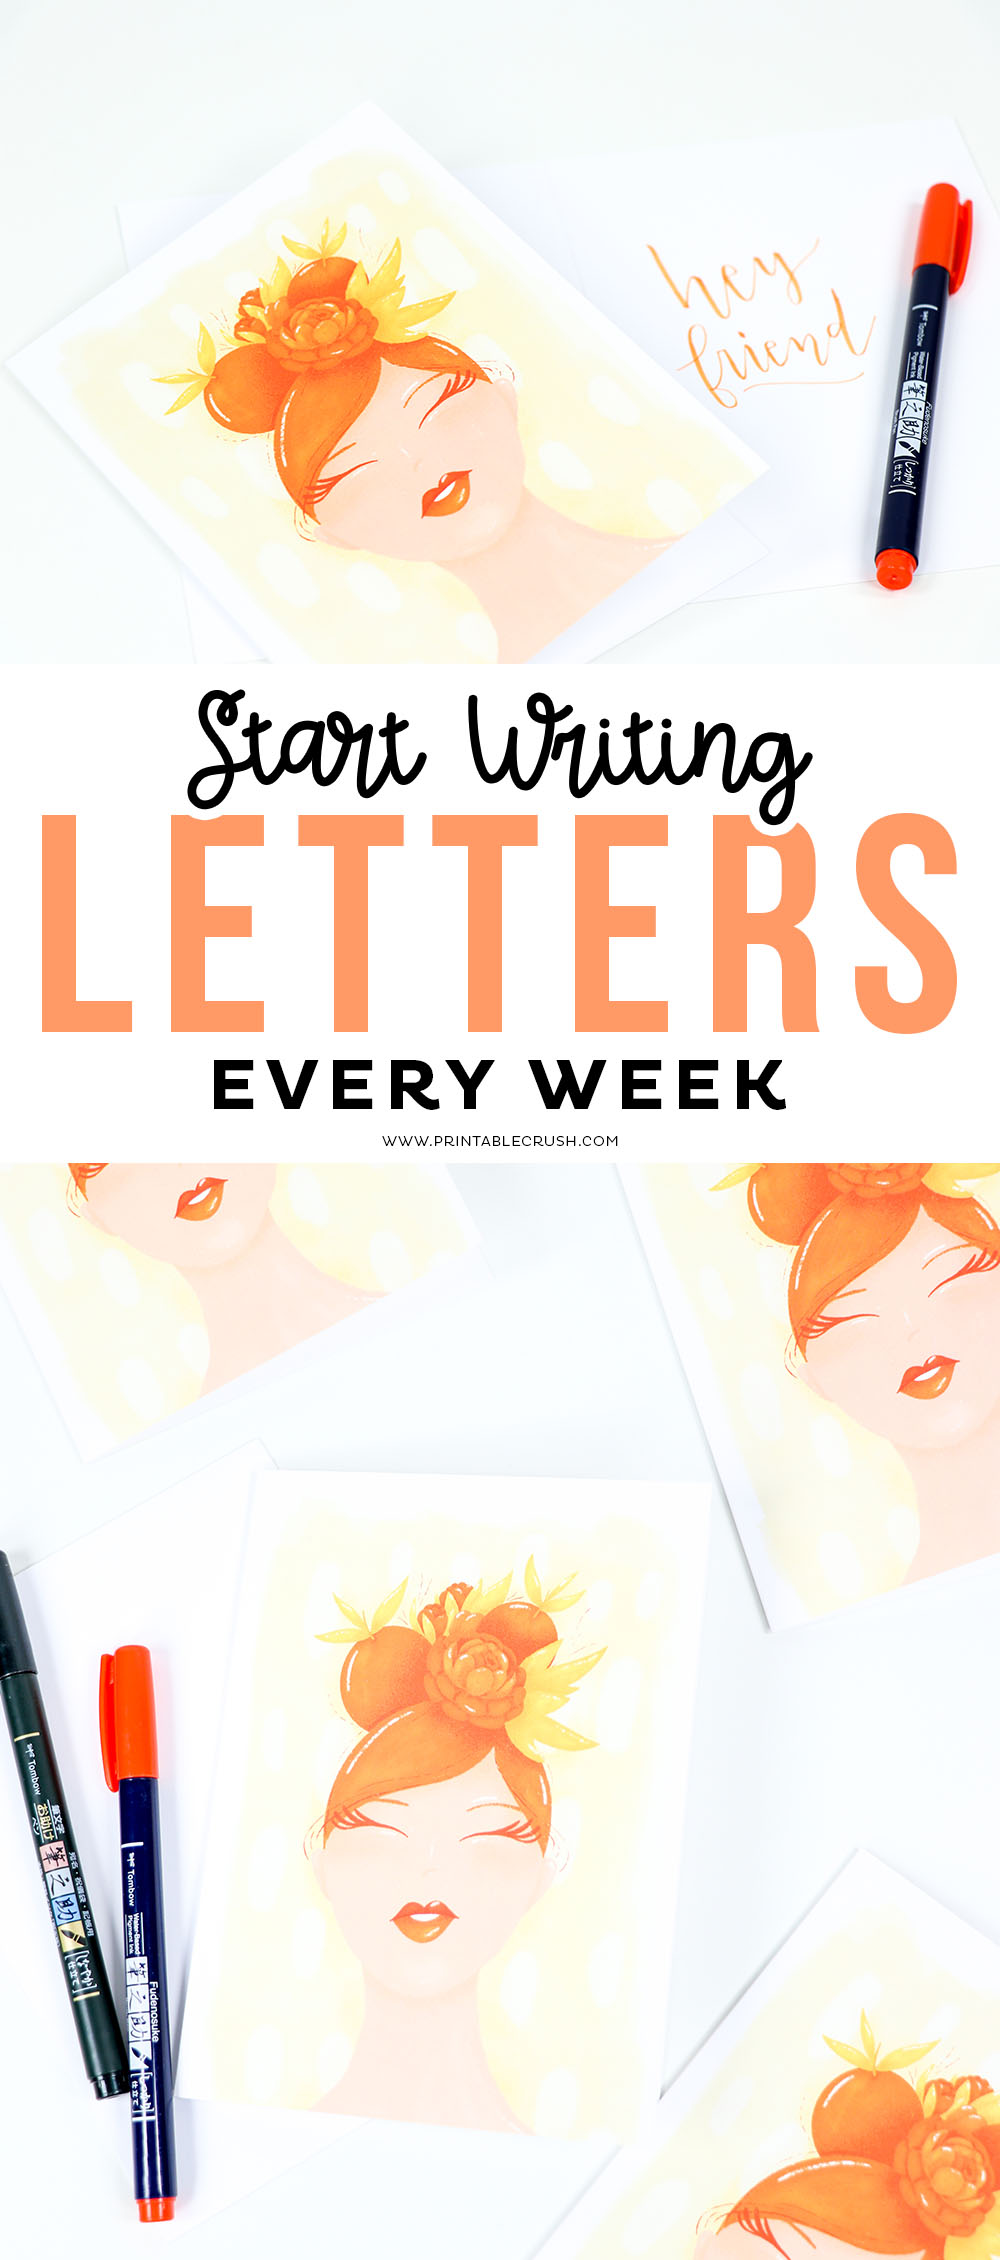 Start writing Letters EVERY WEEK with the One Per Week Subscription Box #letters #cards #oneperweek #artonacard